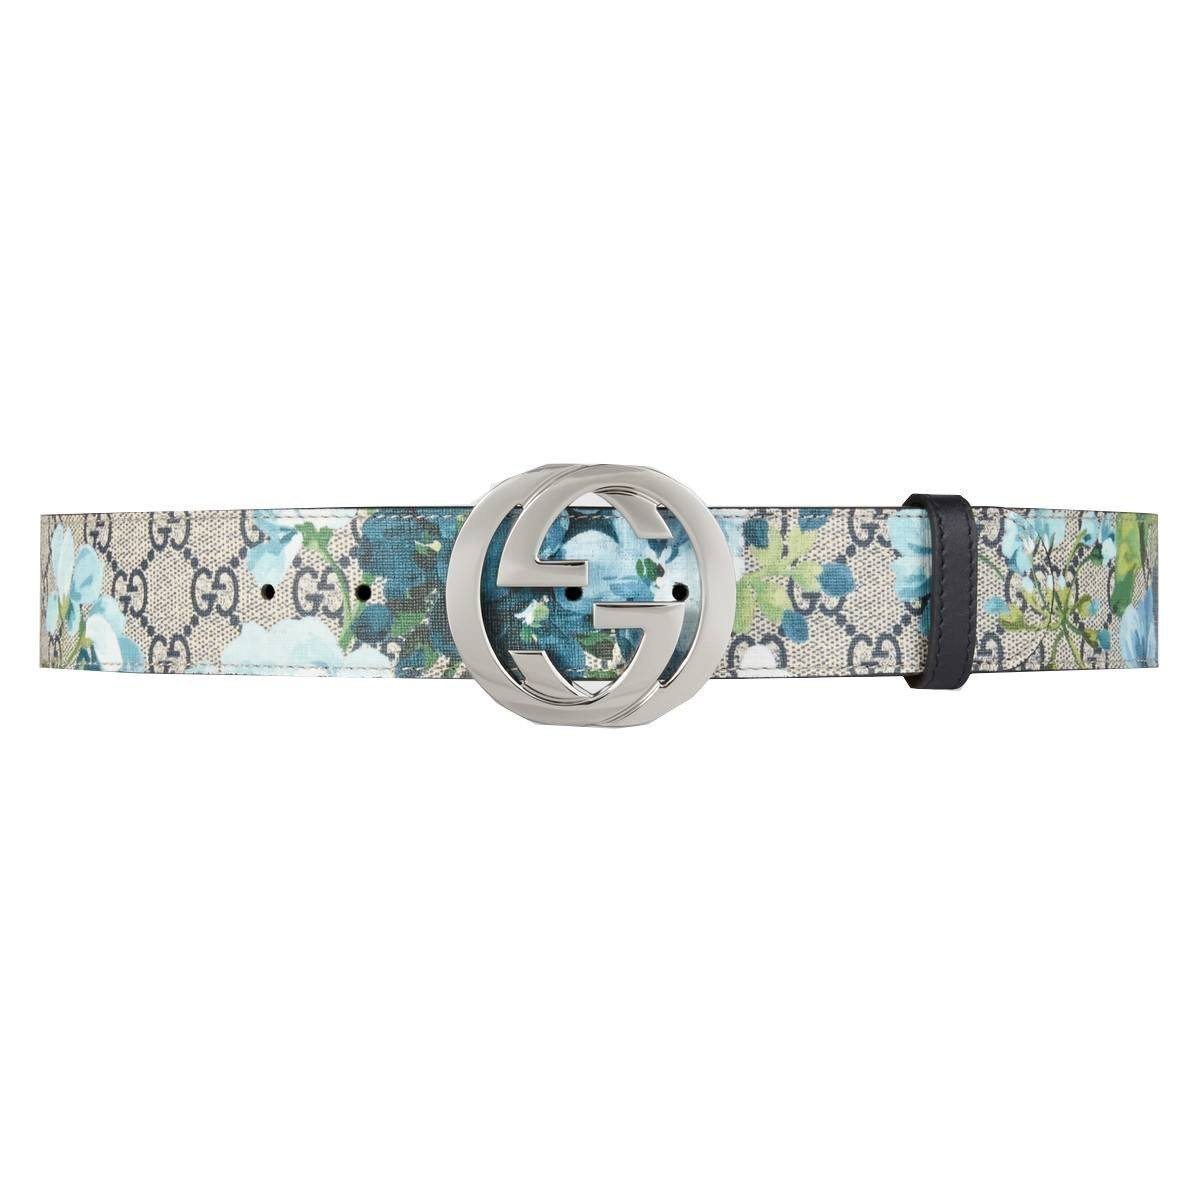 Gucci Women's Blooms GG Belt 411924 Size: 110/44 Belts Gucci